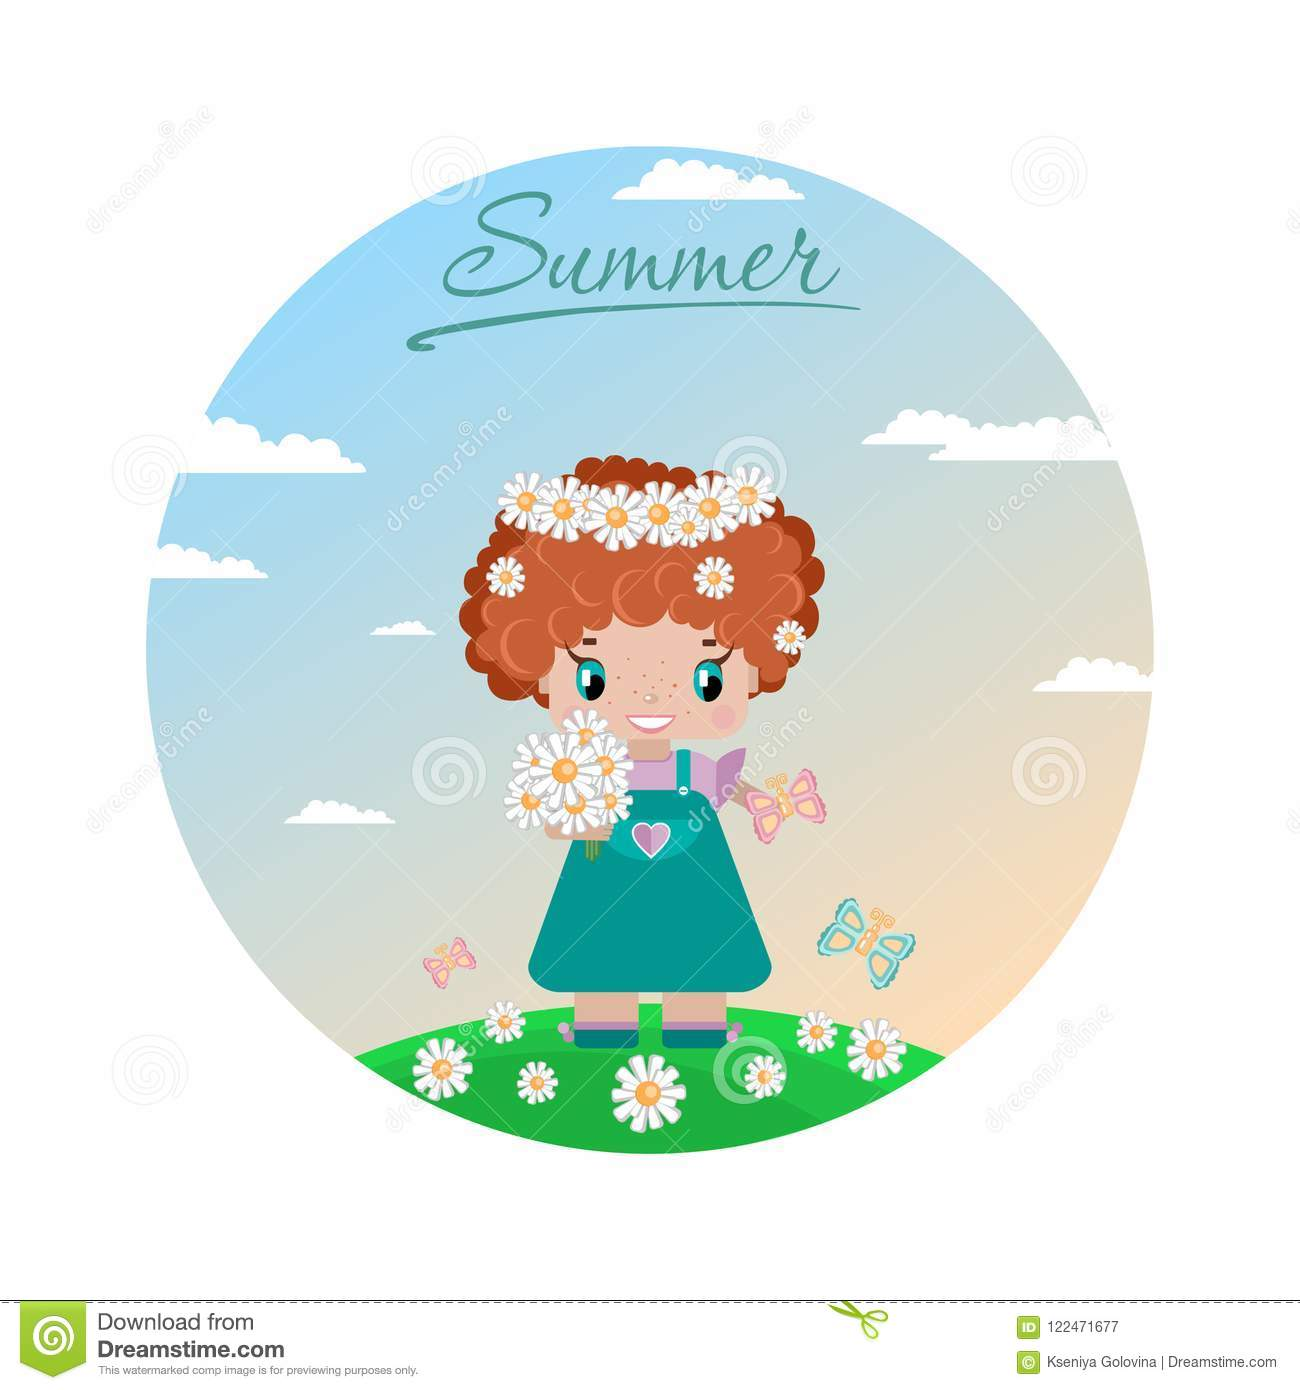 Girl on a summer lawn, with red curly hair, in a wreath of daisies